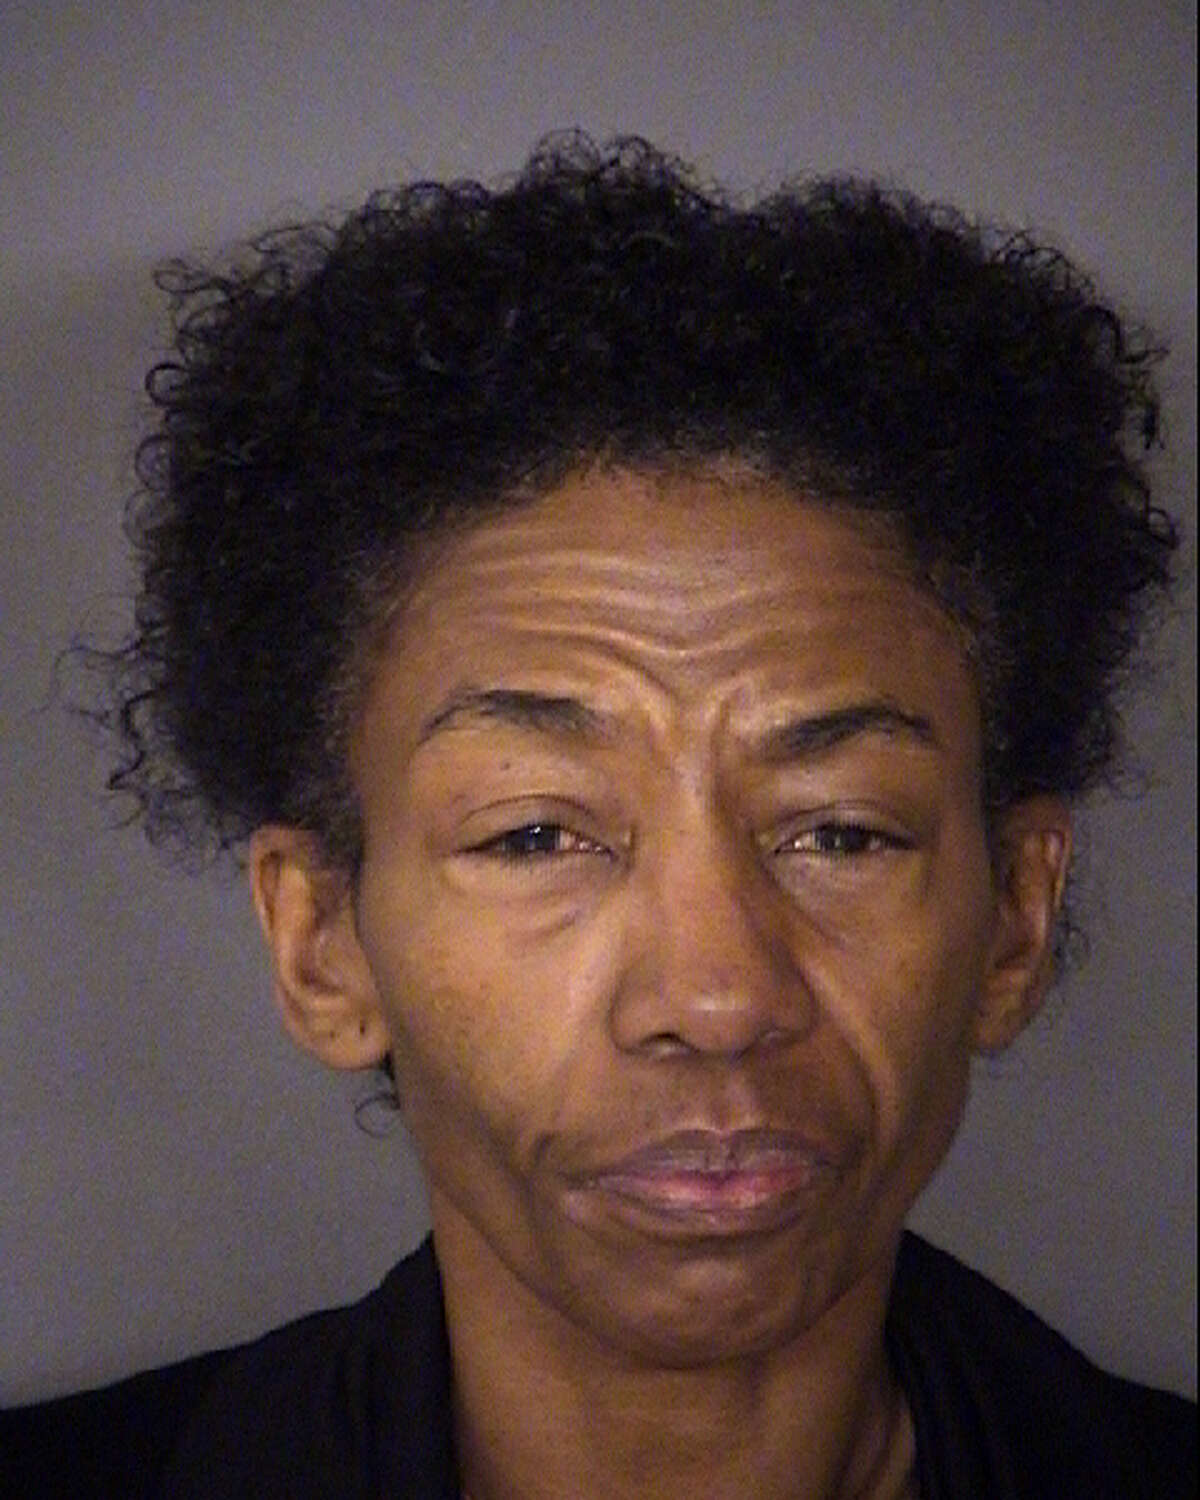 Michelle Chase, 49, faces a charge of murder, according to an arrest warrant affidavit.